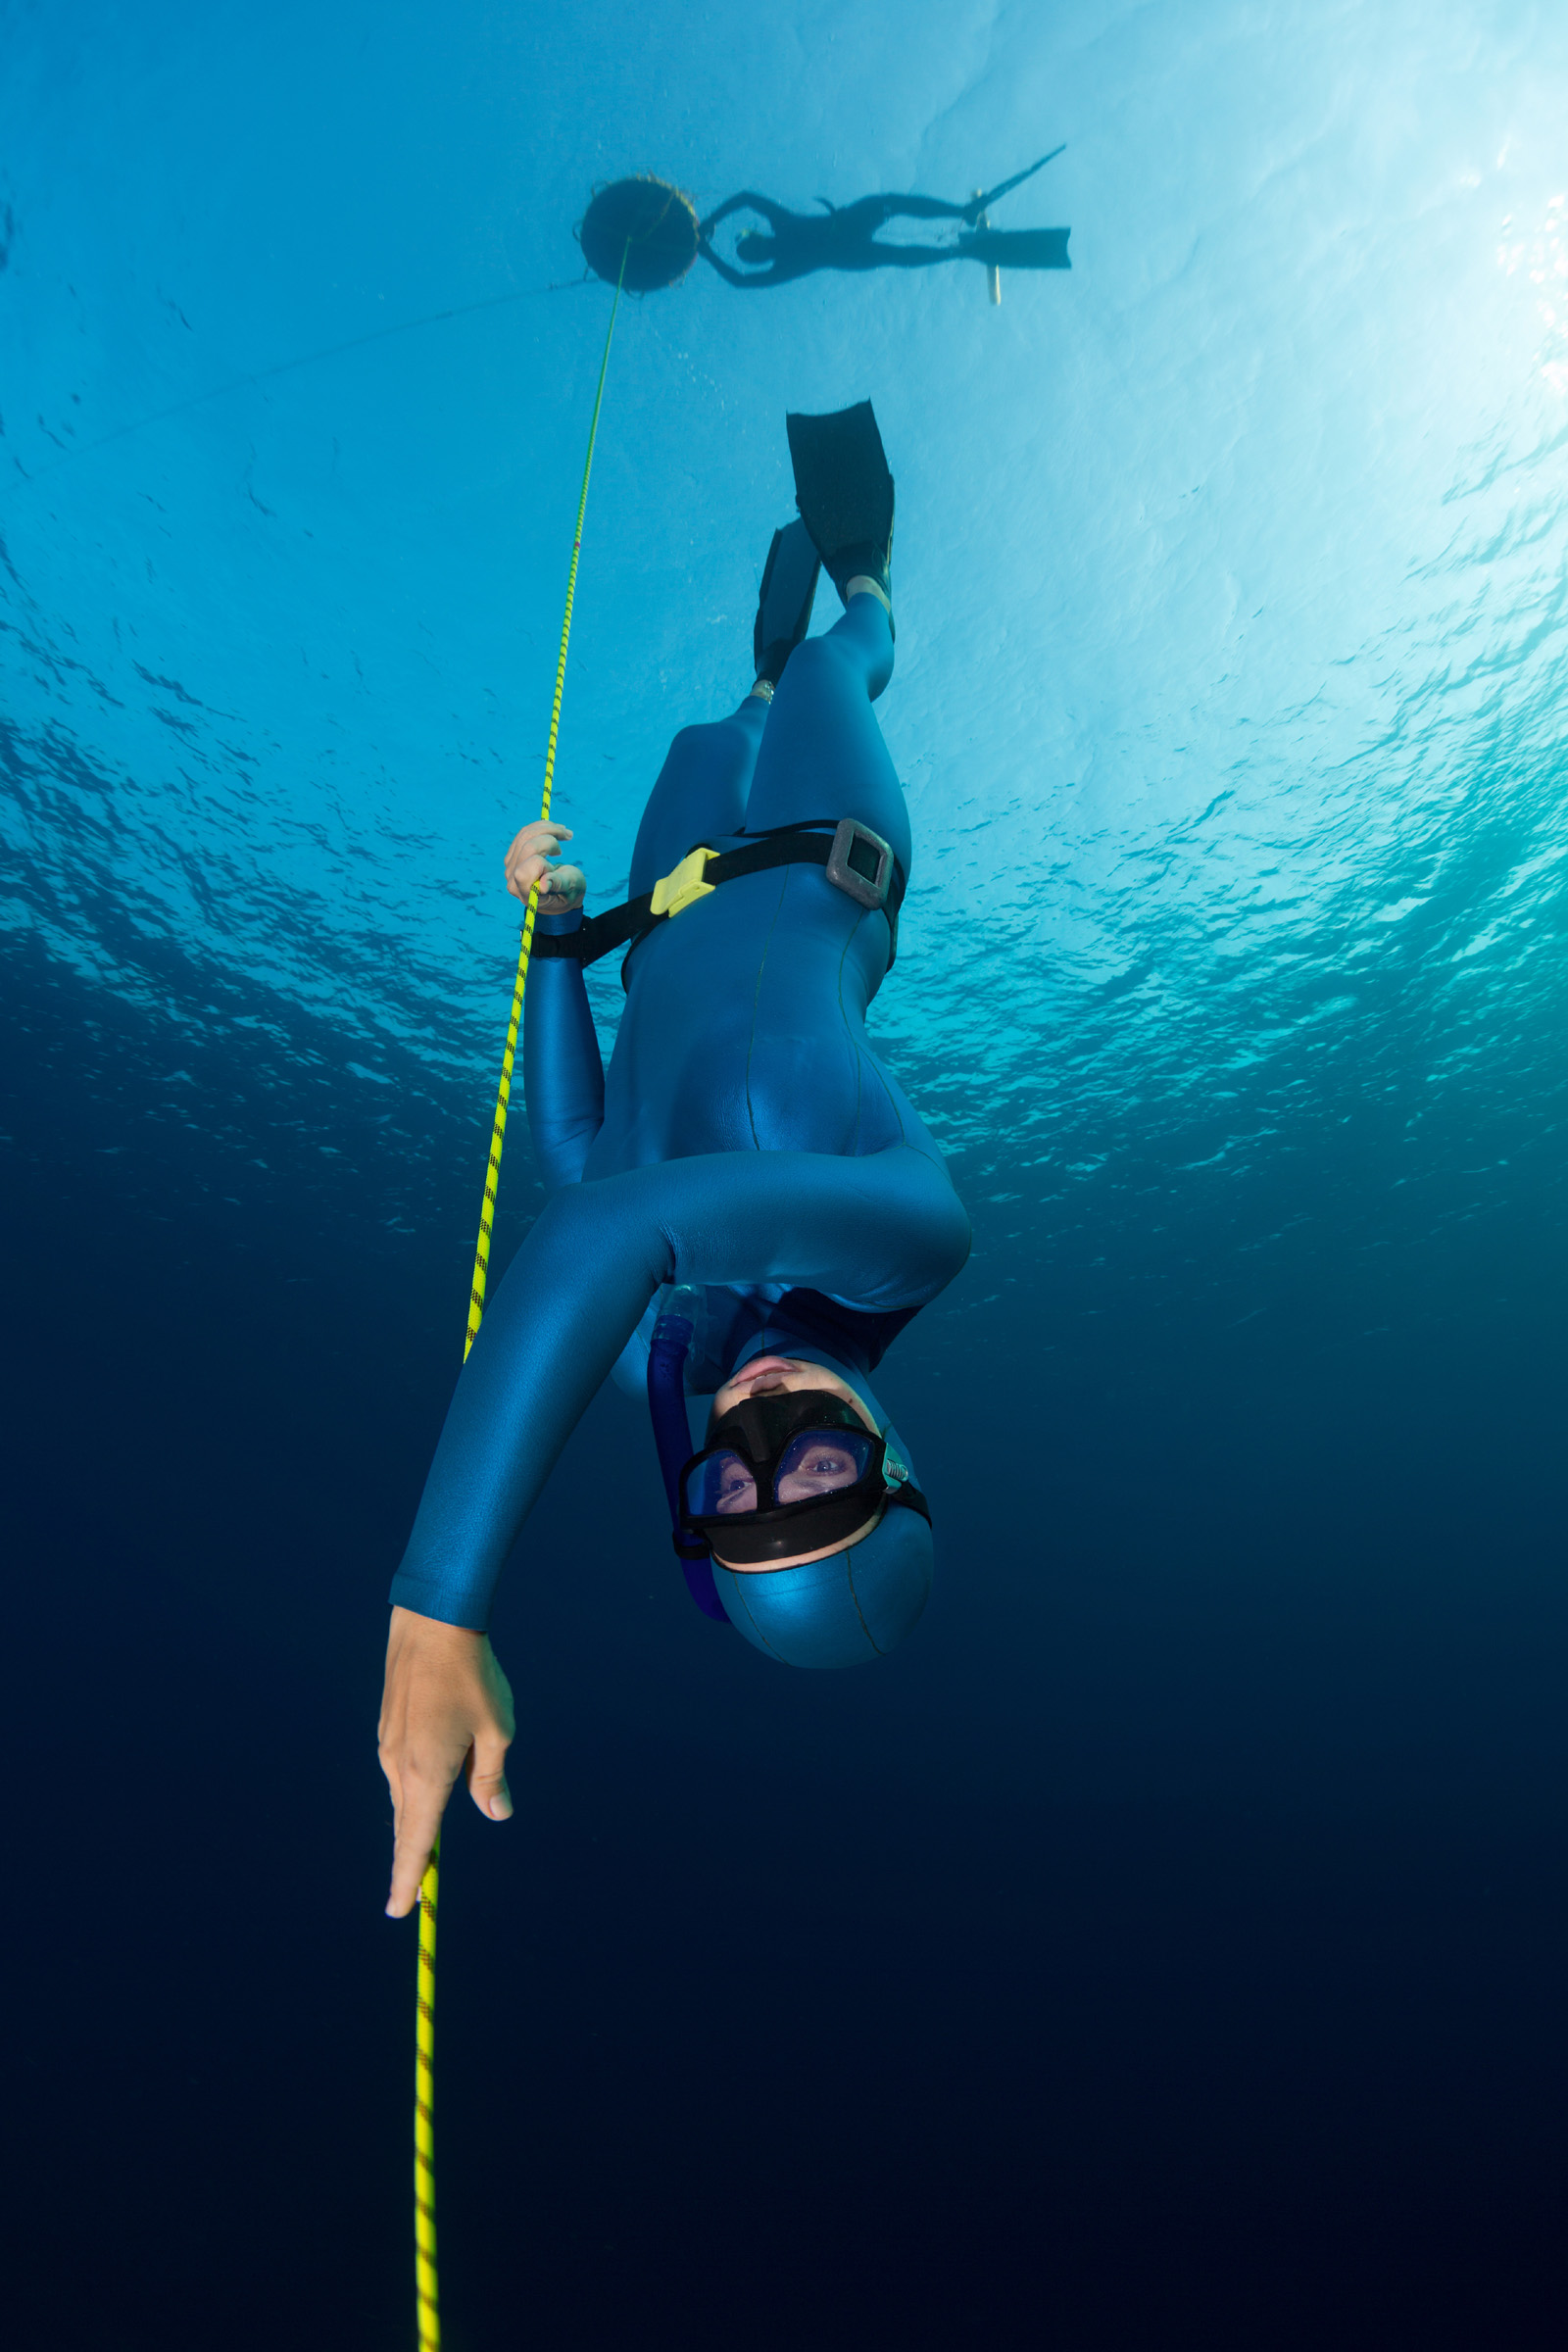 Climbed down ropes to dive to the bottom of the Frogman 51883